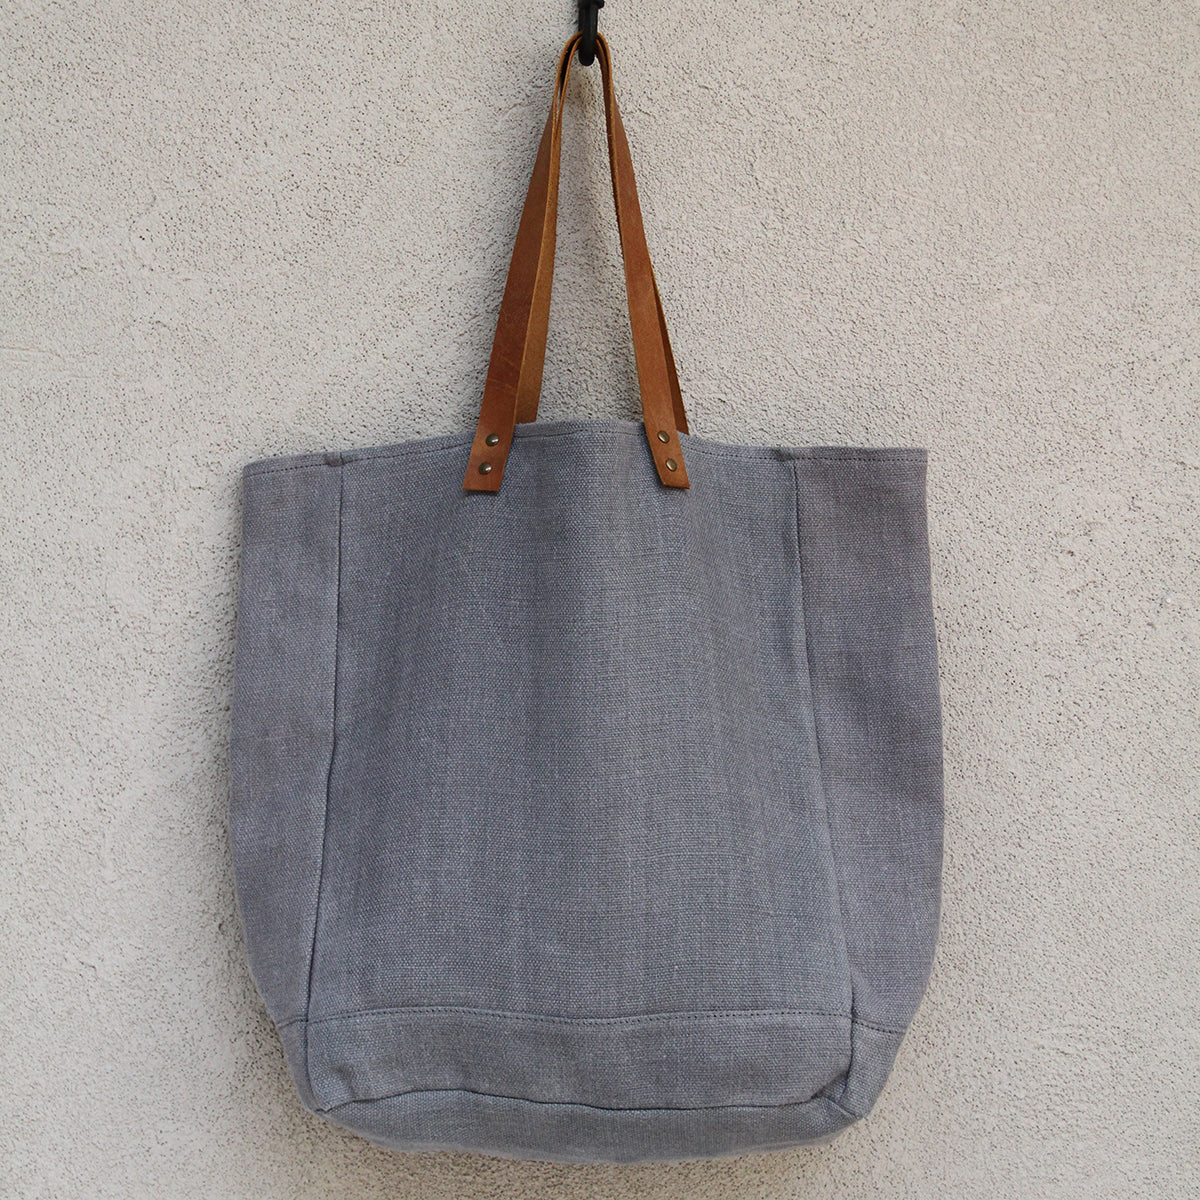 jute-canvas-tote-the-dharma-door